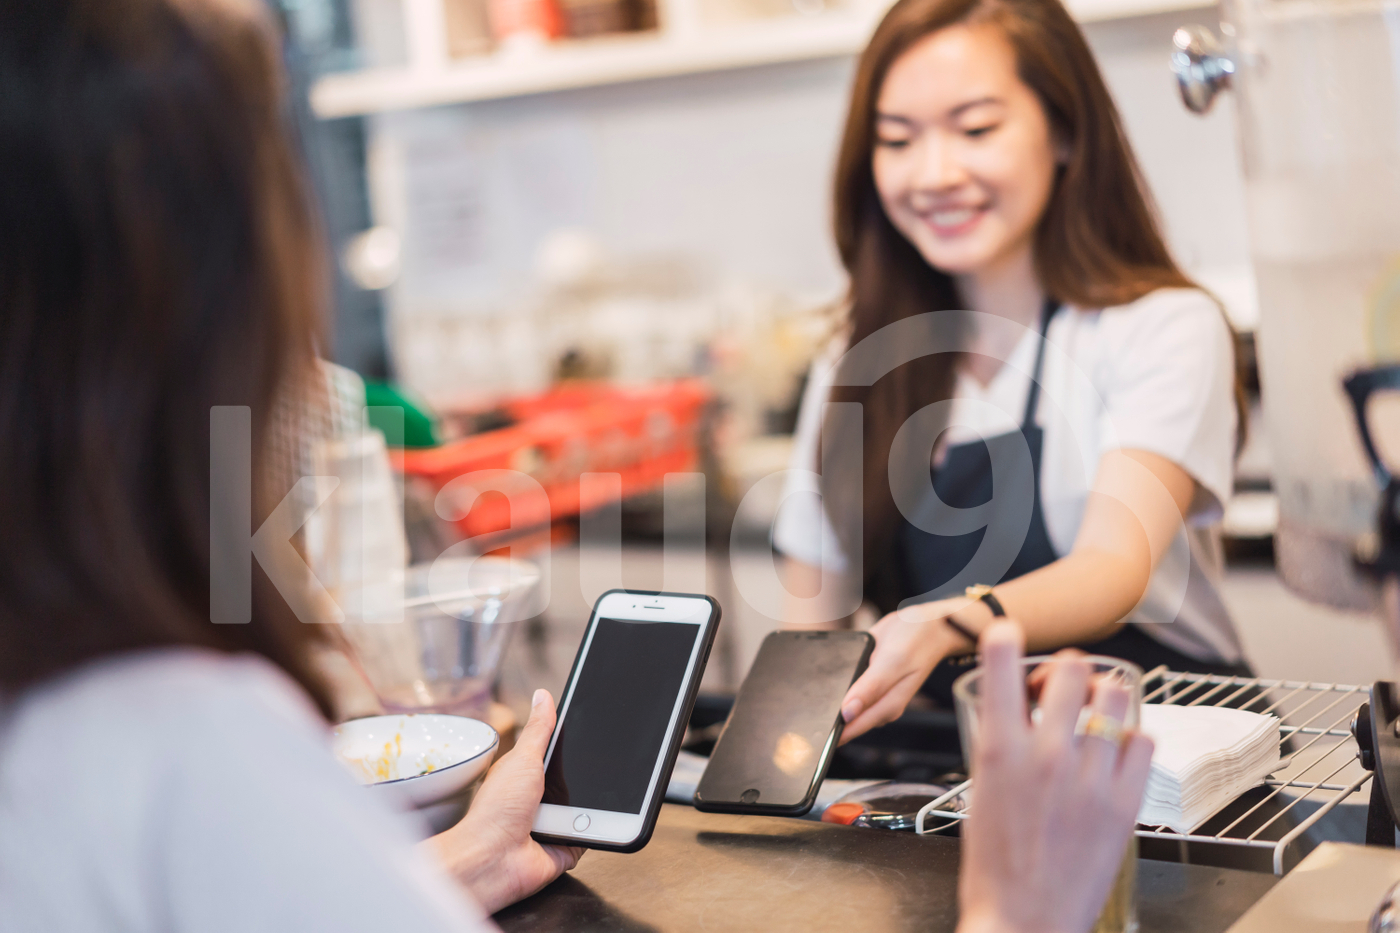 Female customer making payment transaction with smartphone